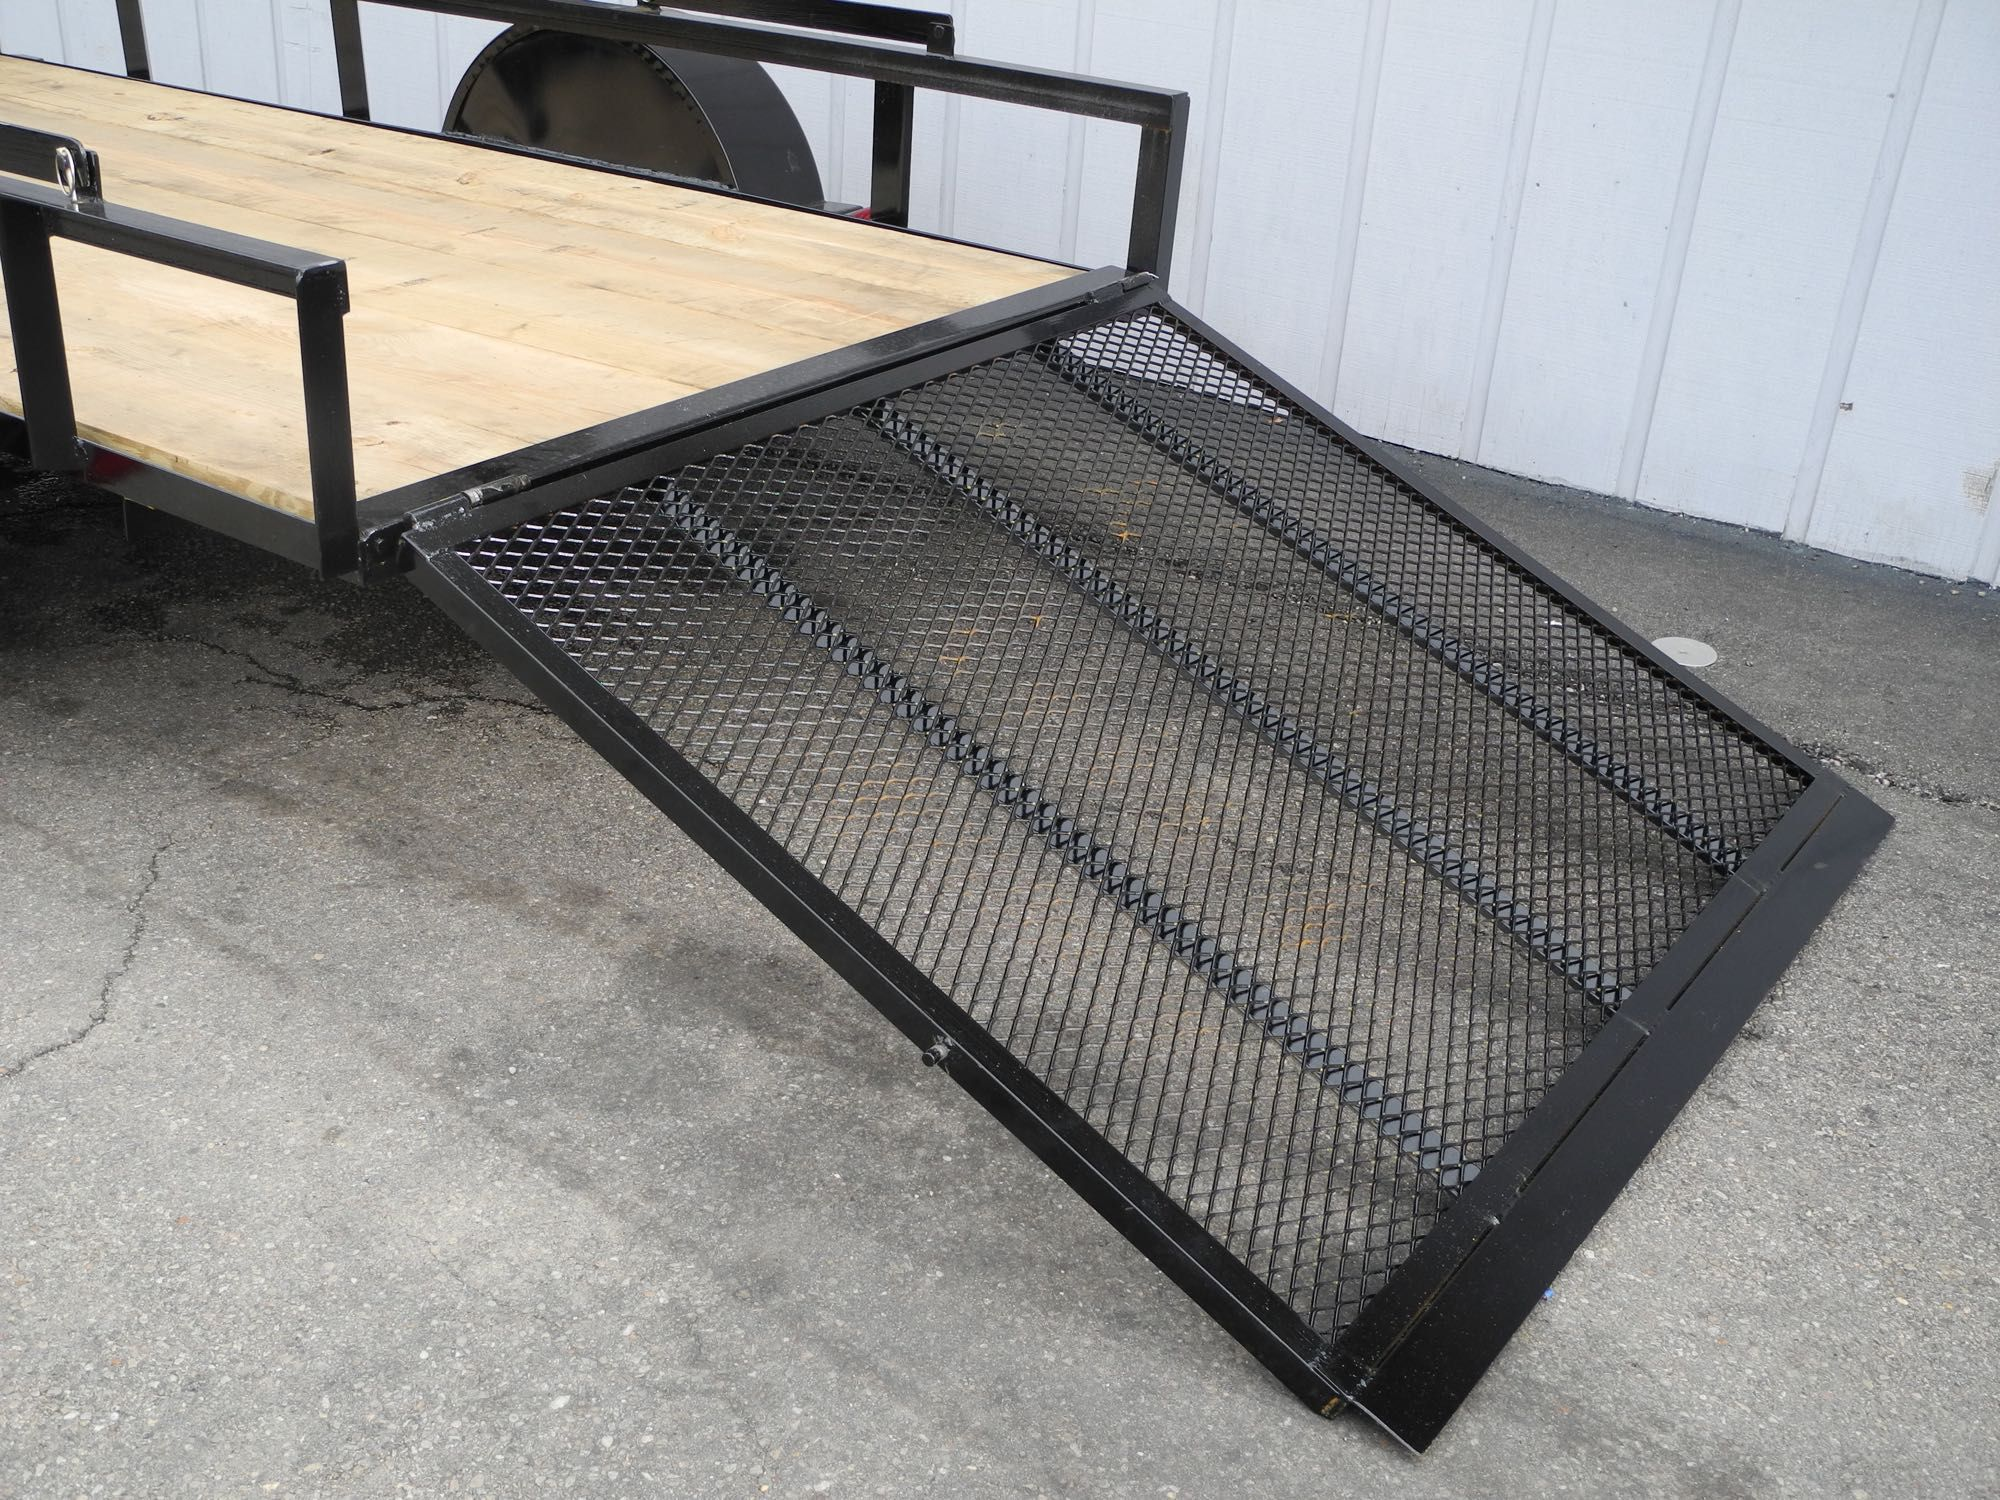 This new 5x10 steel ramp gate utility trailer is a